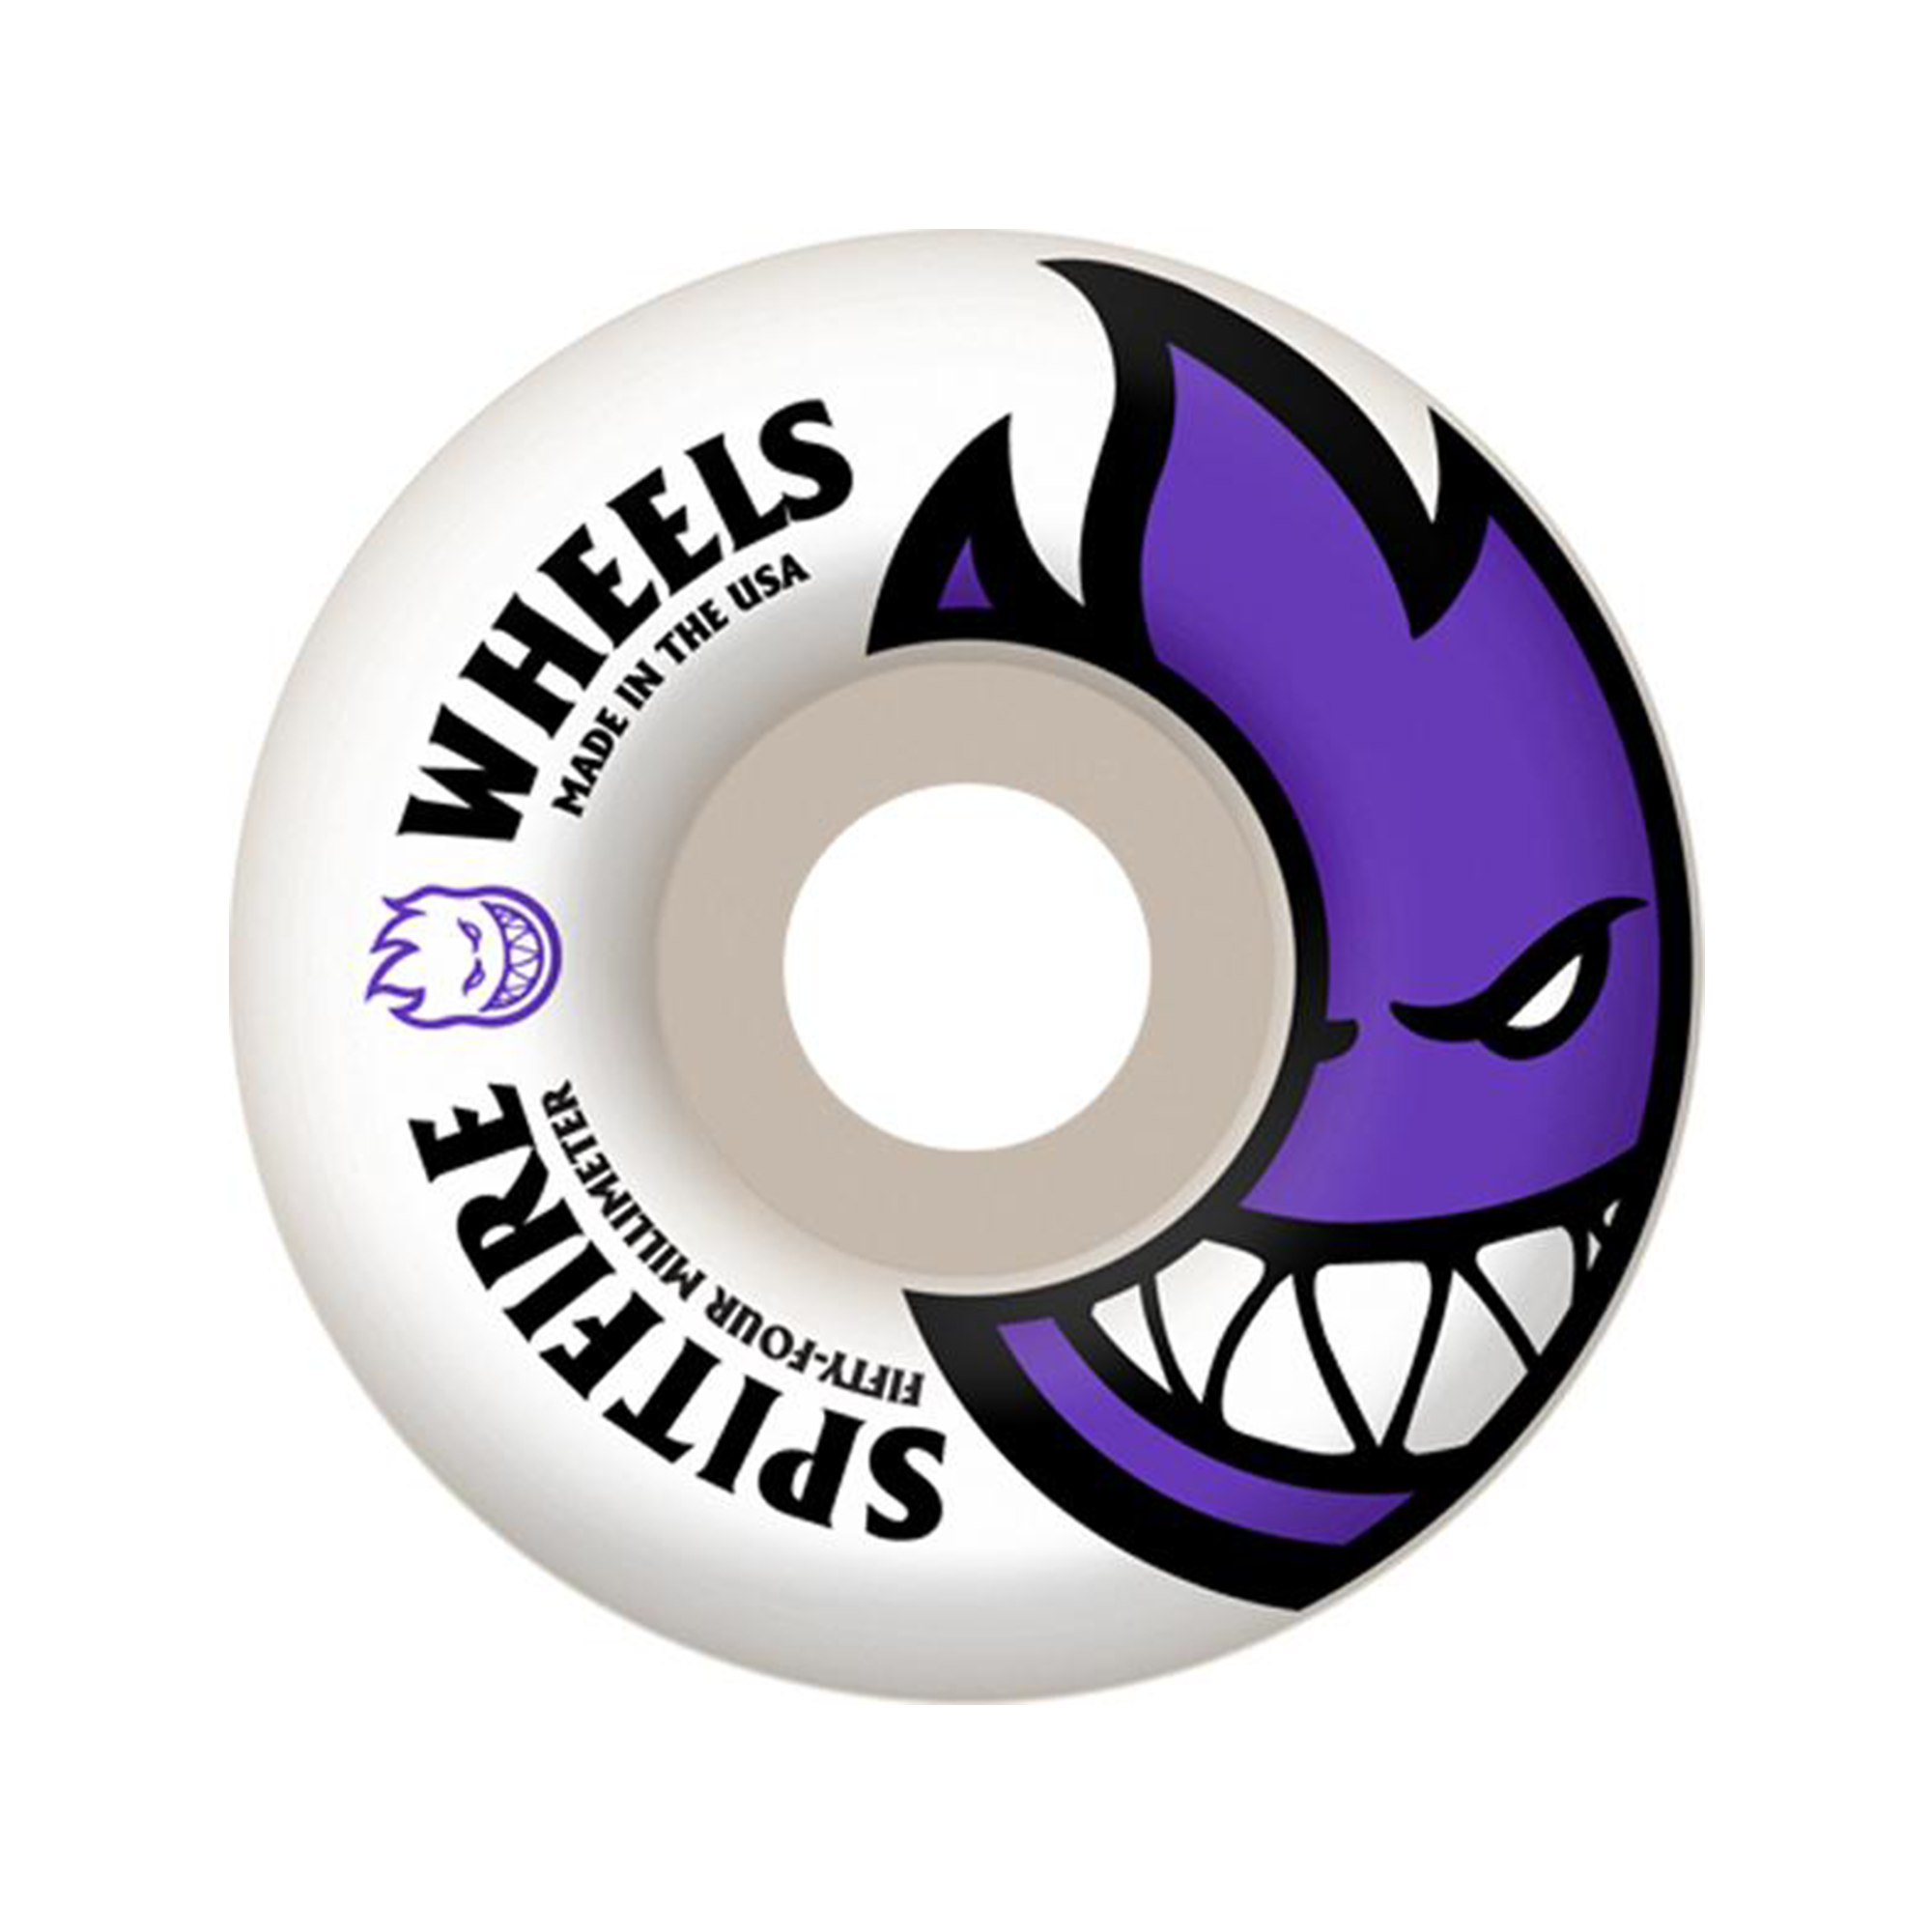 Spitfire Bighead Wheels Product Photo #2